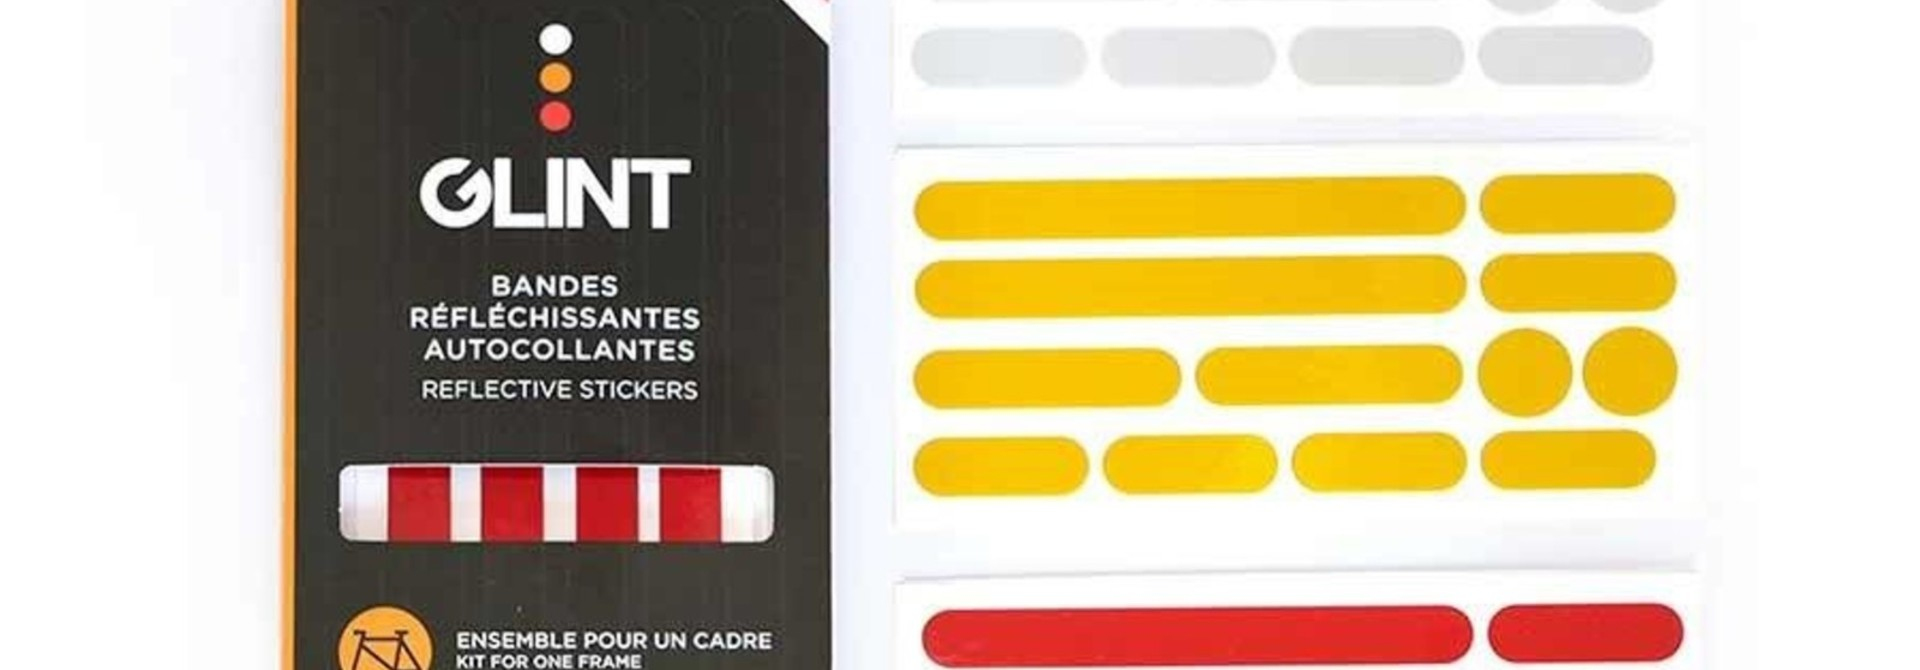 Reflective, Frame Stickers 3 Colors, White/Yellow/Red, Kit